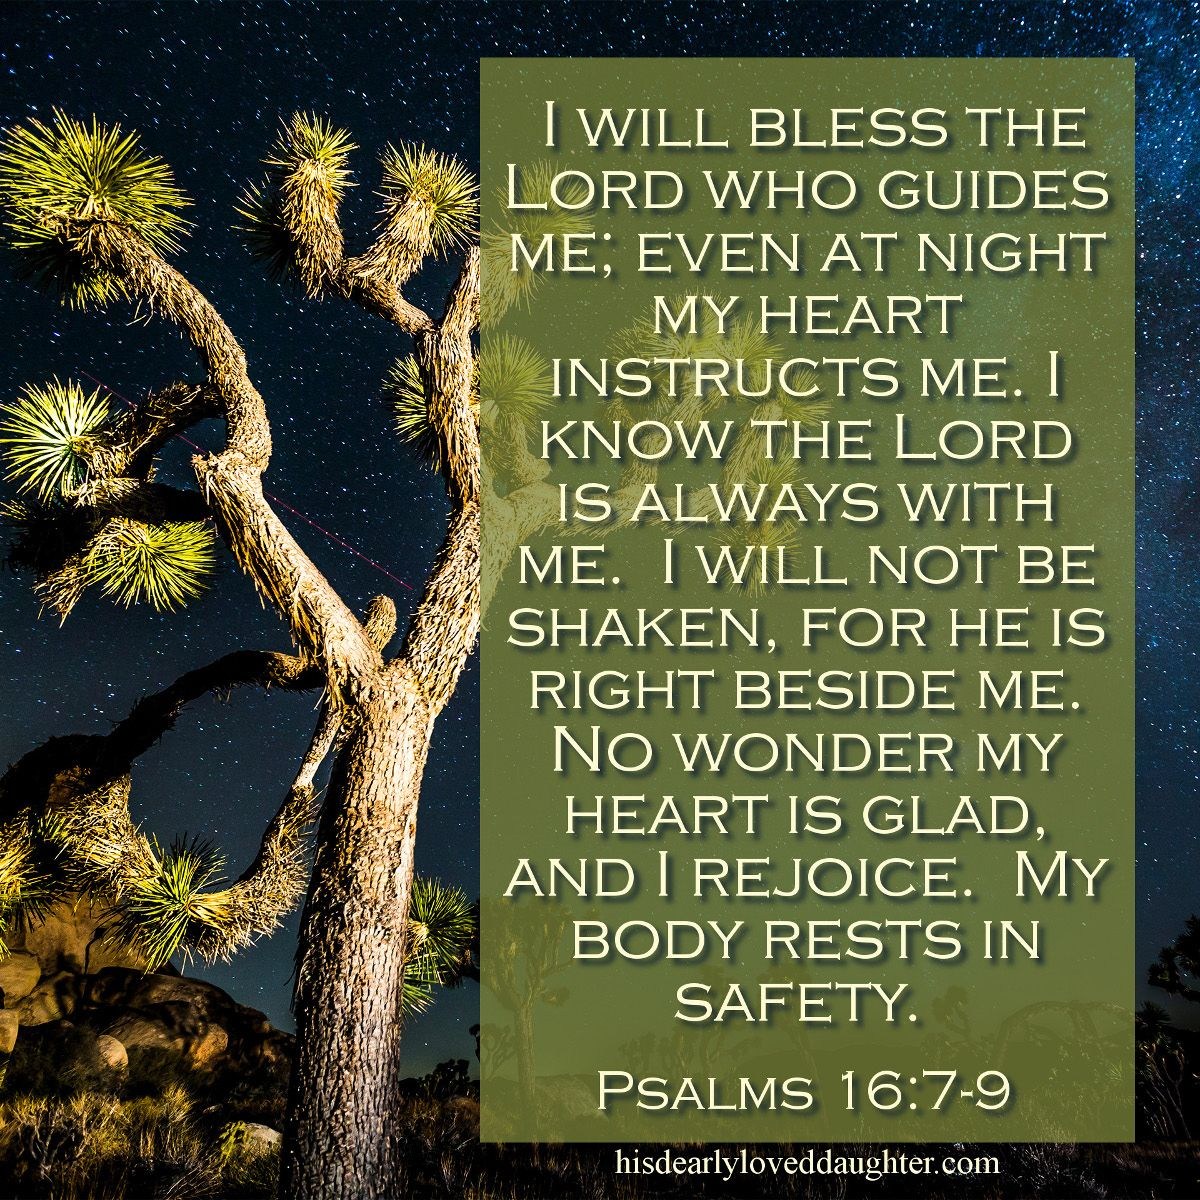 Image result for psalm 16:7-9 image